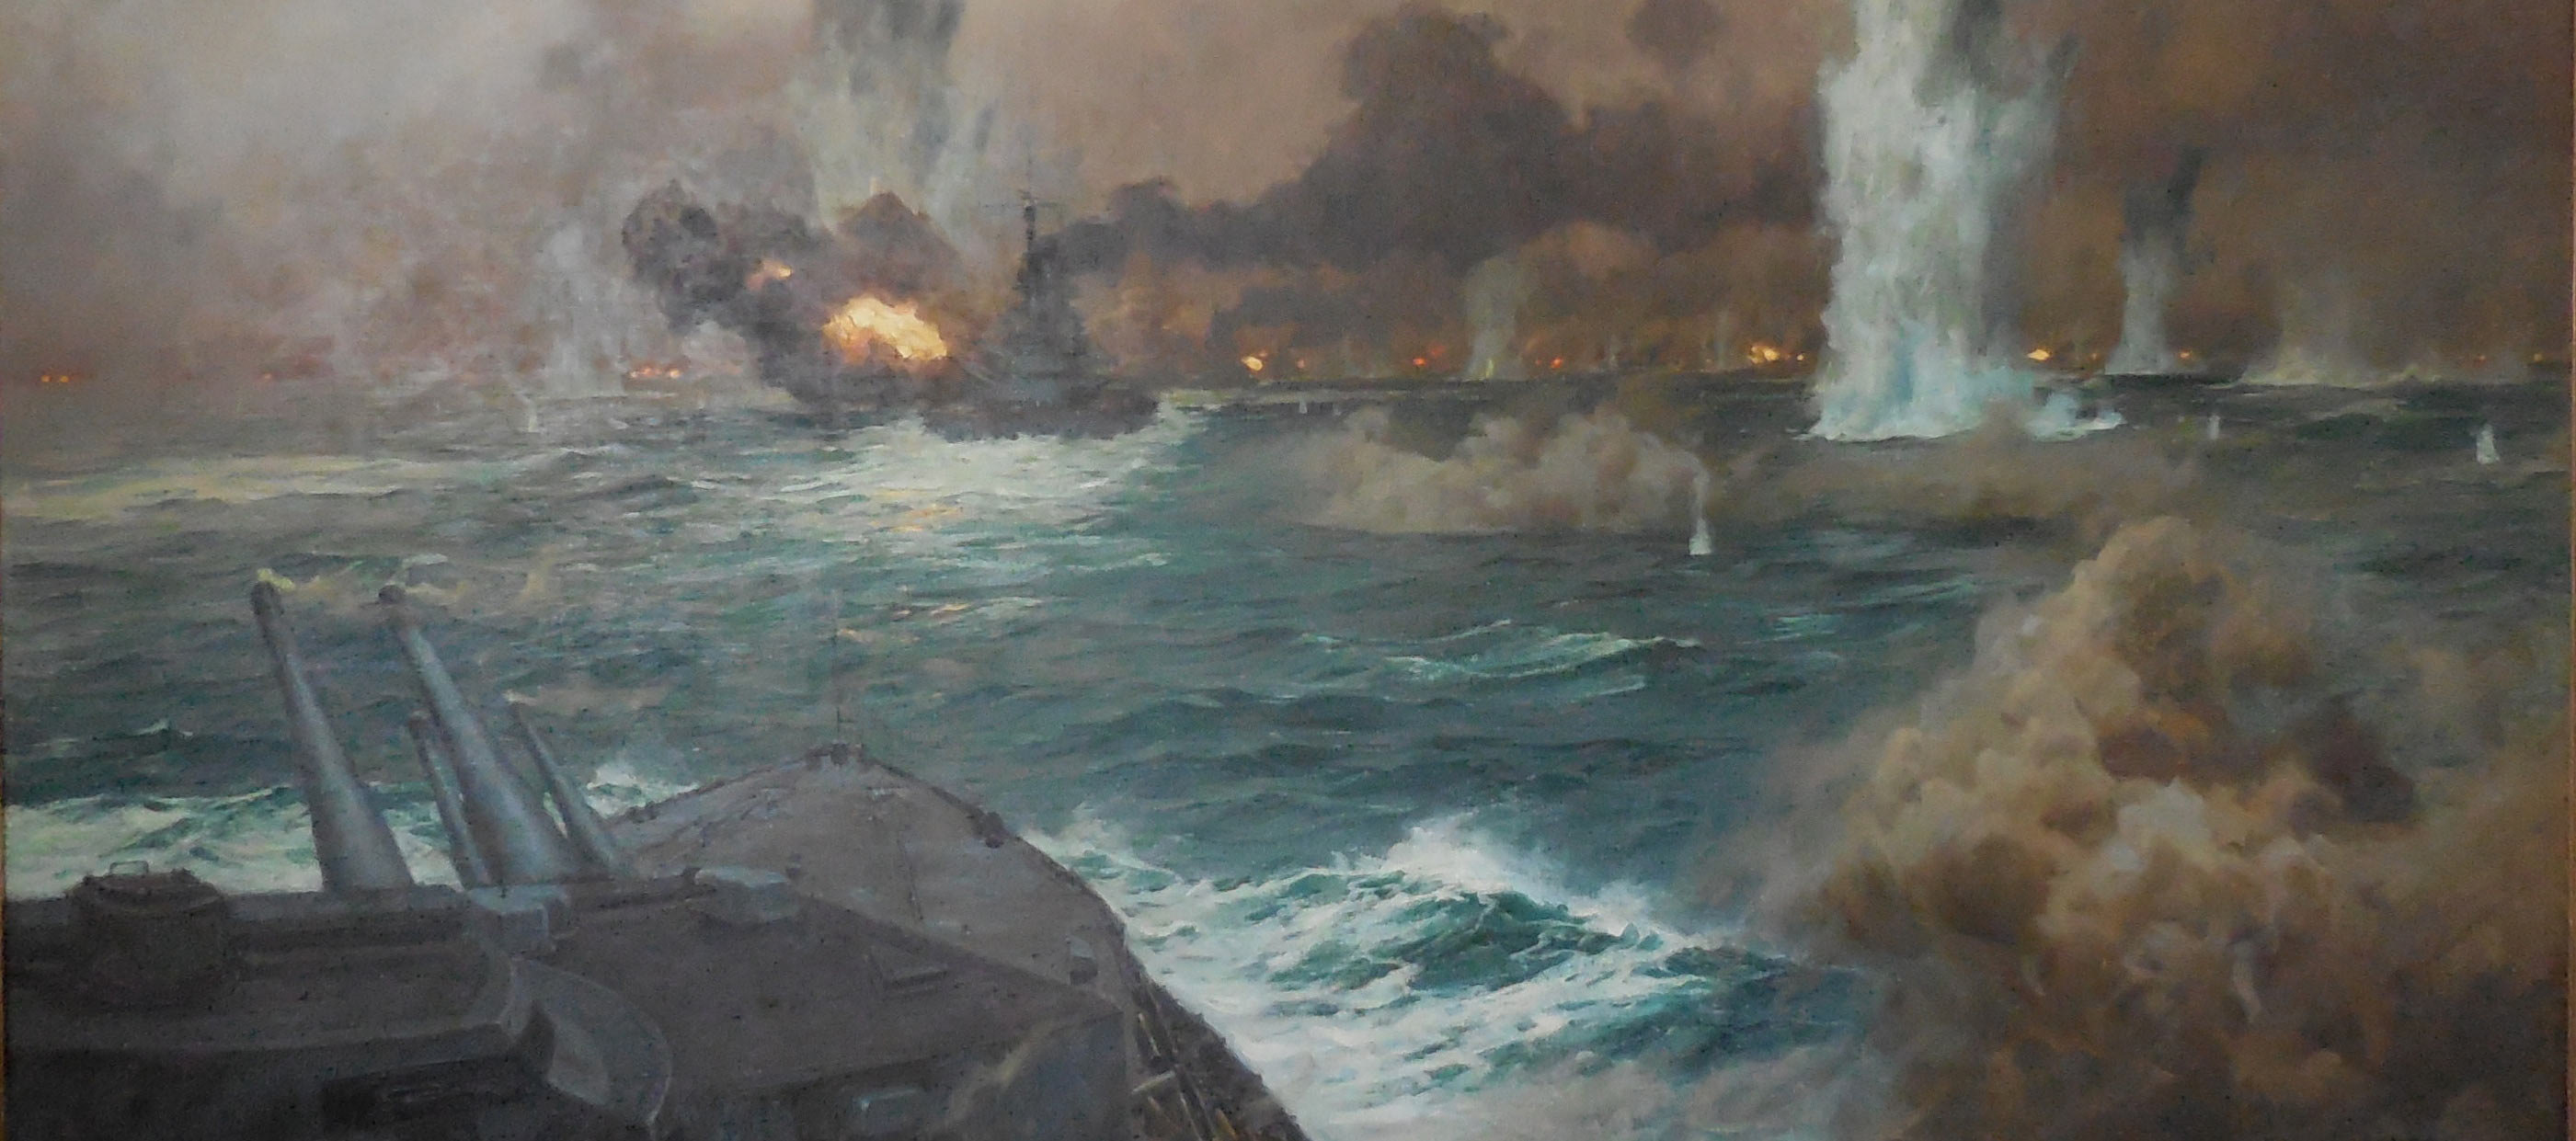 The German High Seas Fleet in action at the Battle of Jutland on 31st May 1916: picture by Claus Bergen